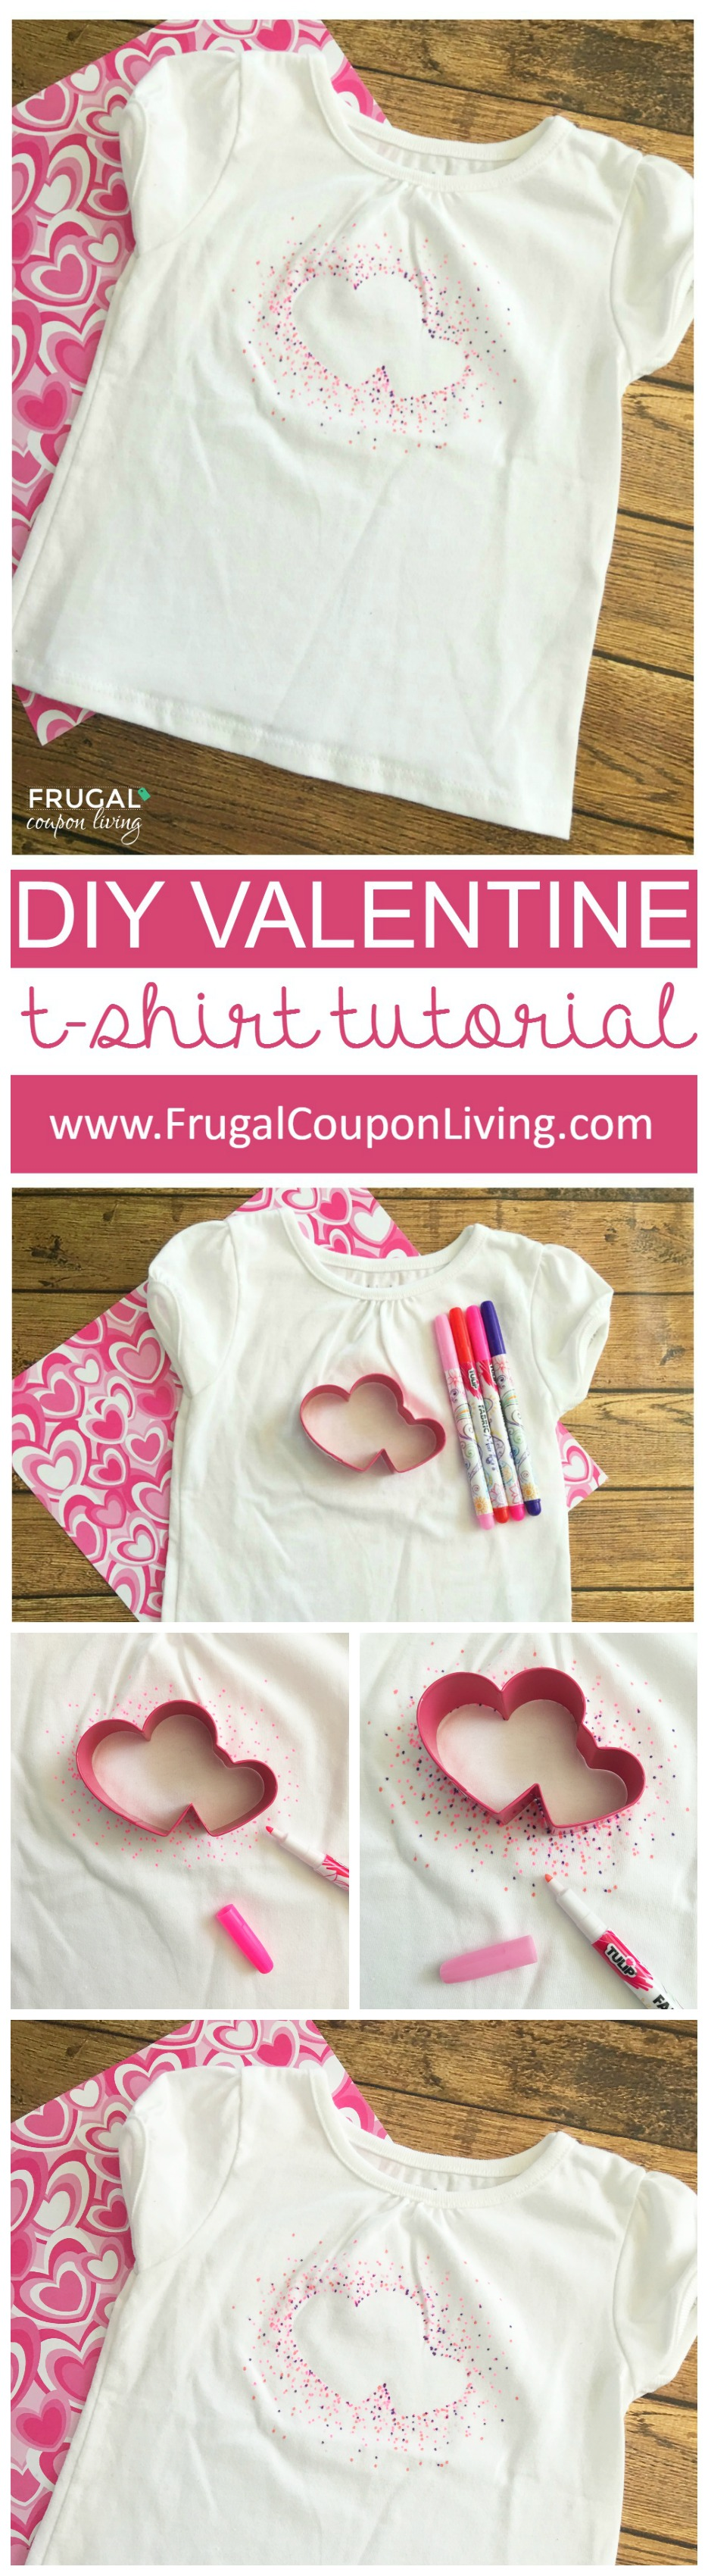 DIY-Valentine-Shirt-long-Collage-frugal-coupon-living